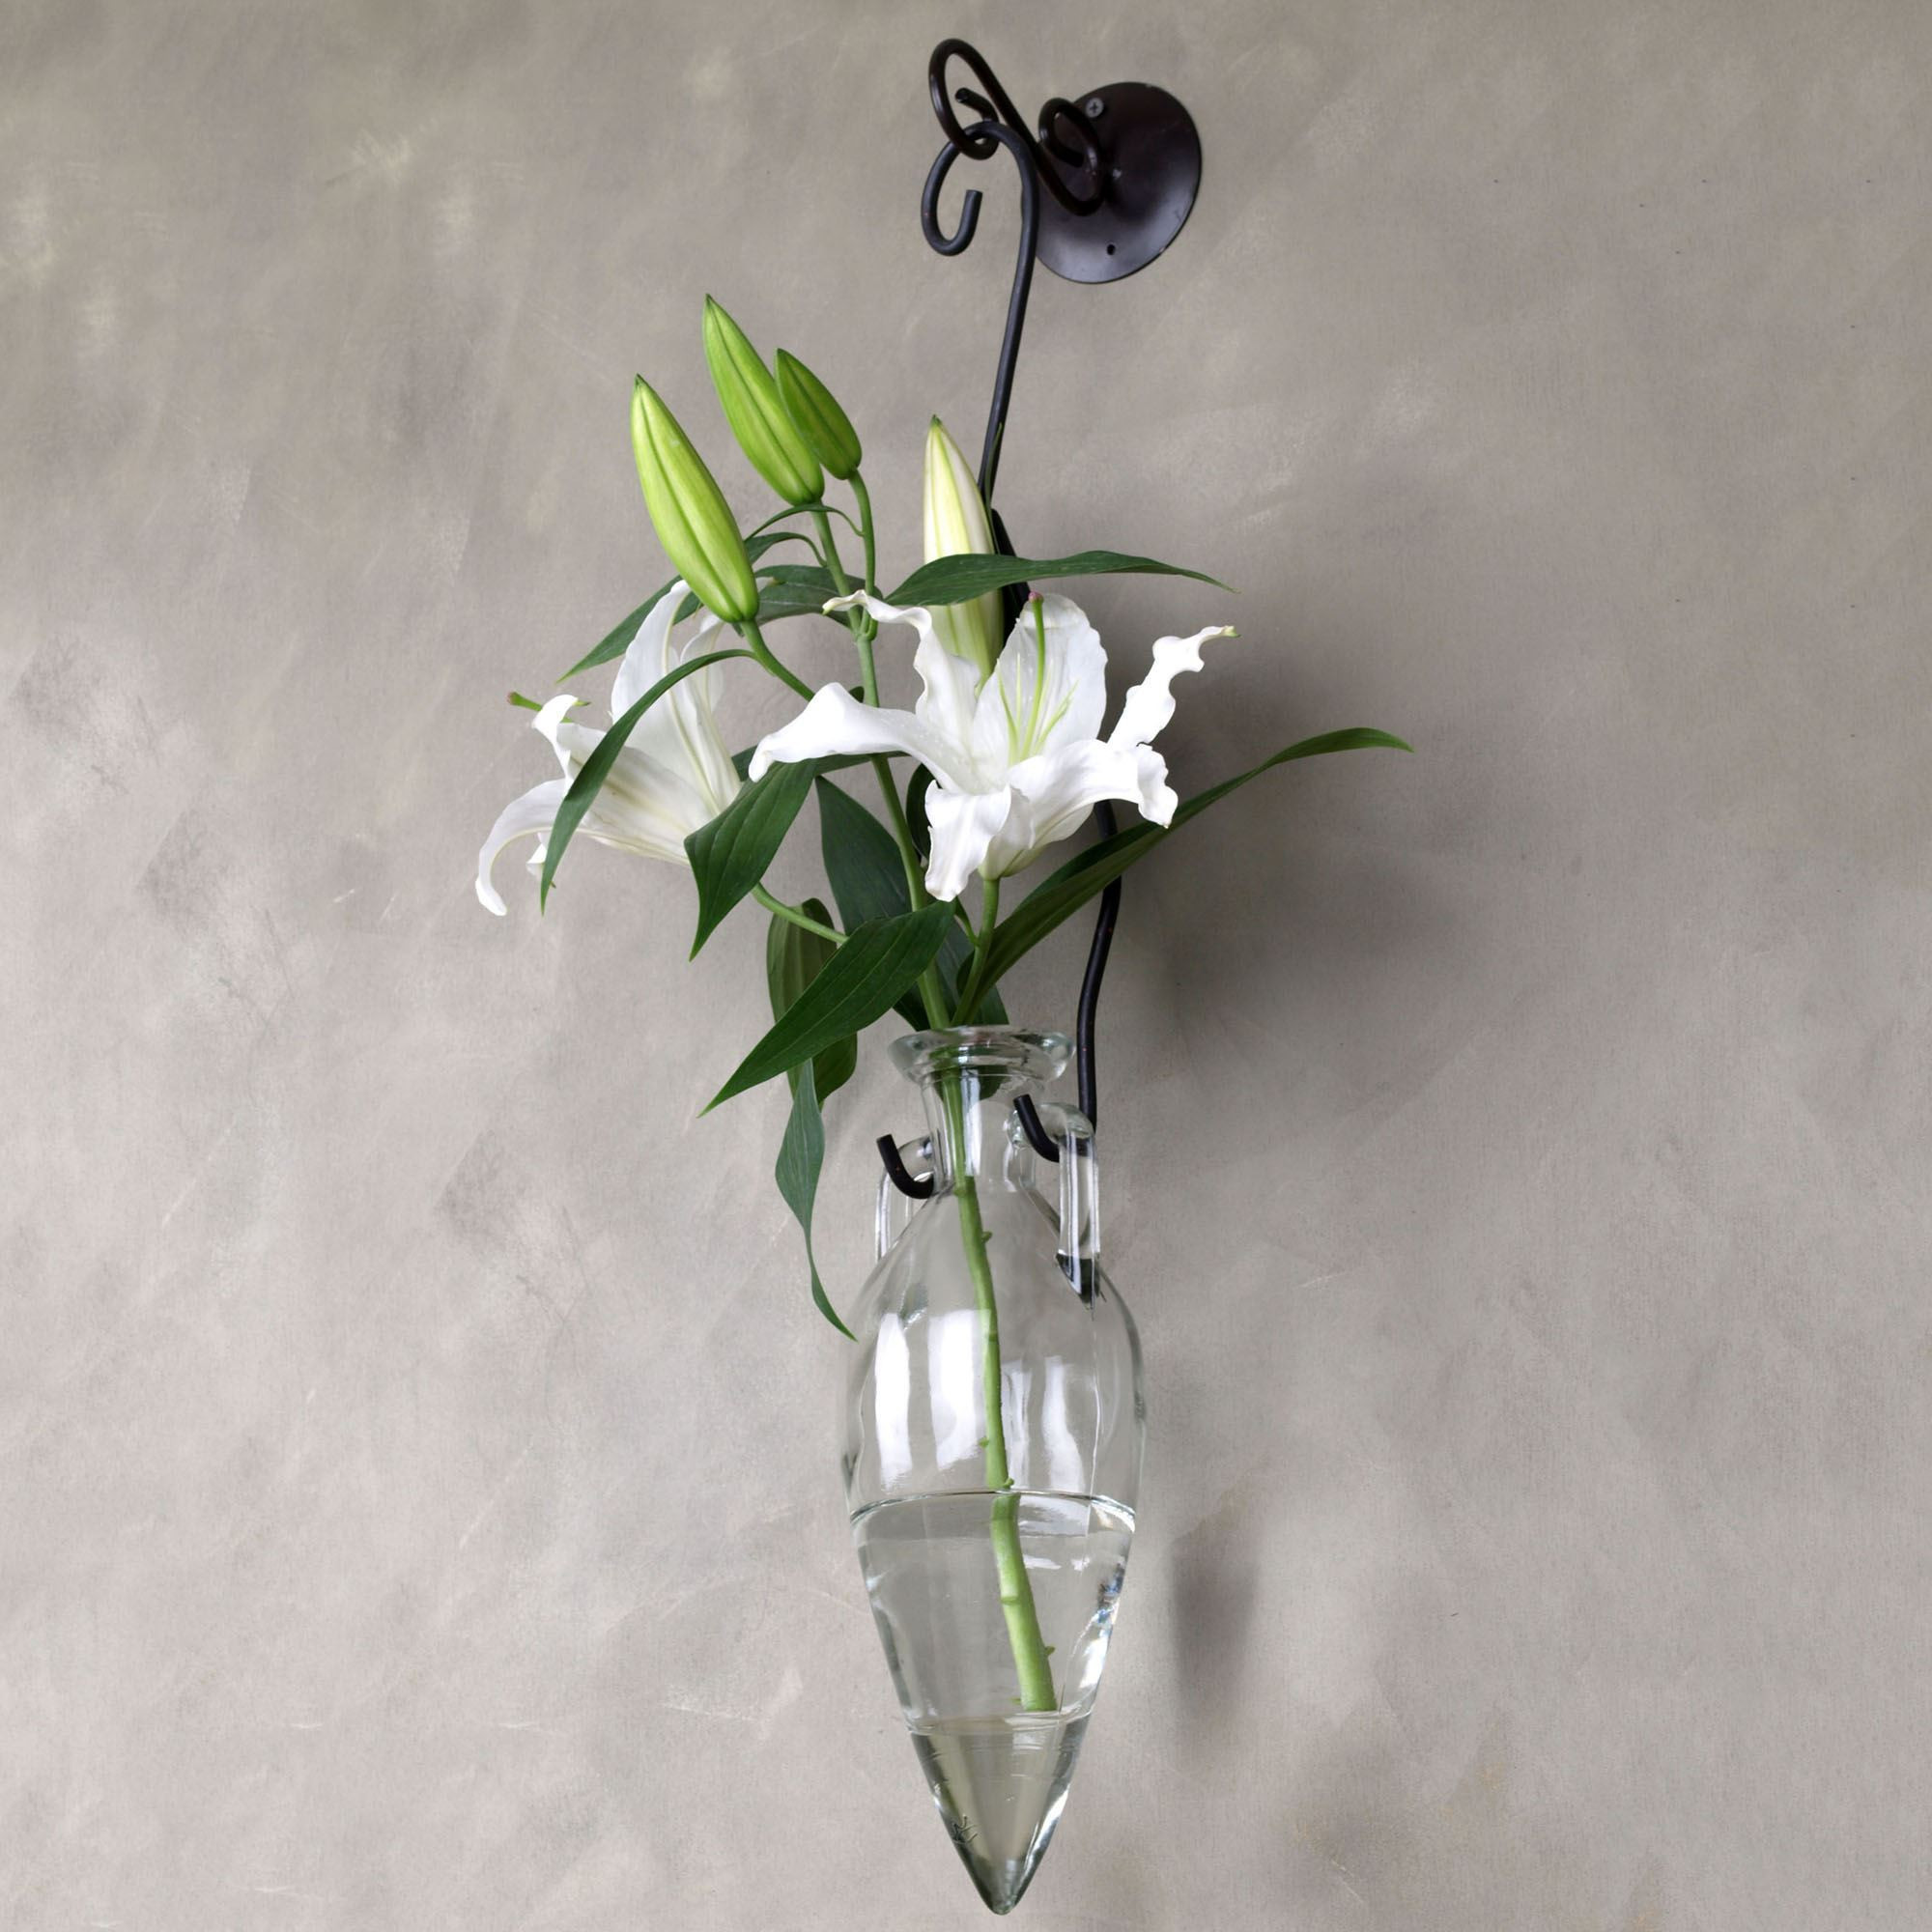 22 Stylish Glass Vase Terrarium 2021 free download glass vase terrarium of collection of hanging glass vases wall vases artificial plants in h vases wall hanging flower vase newspaper i 0d scheme wall